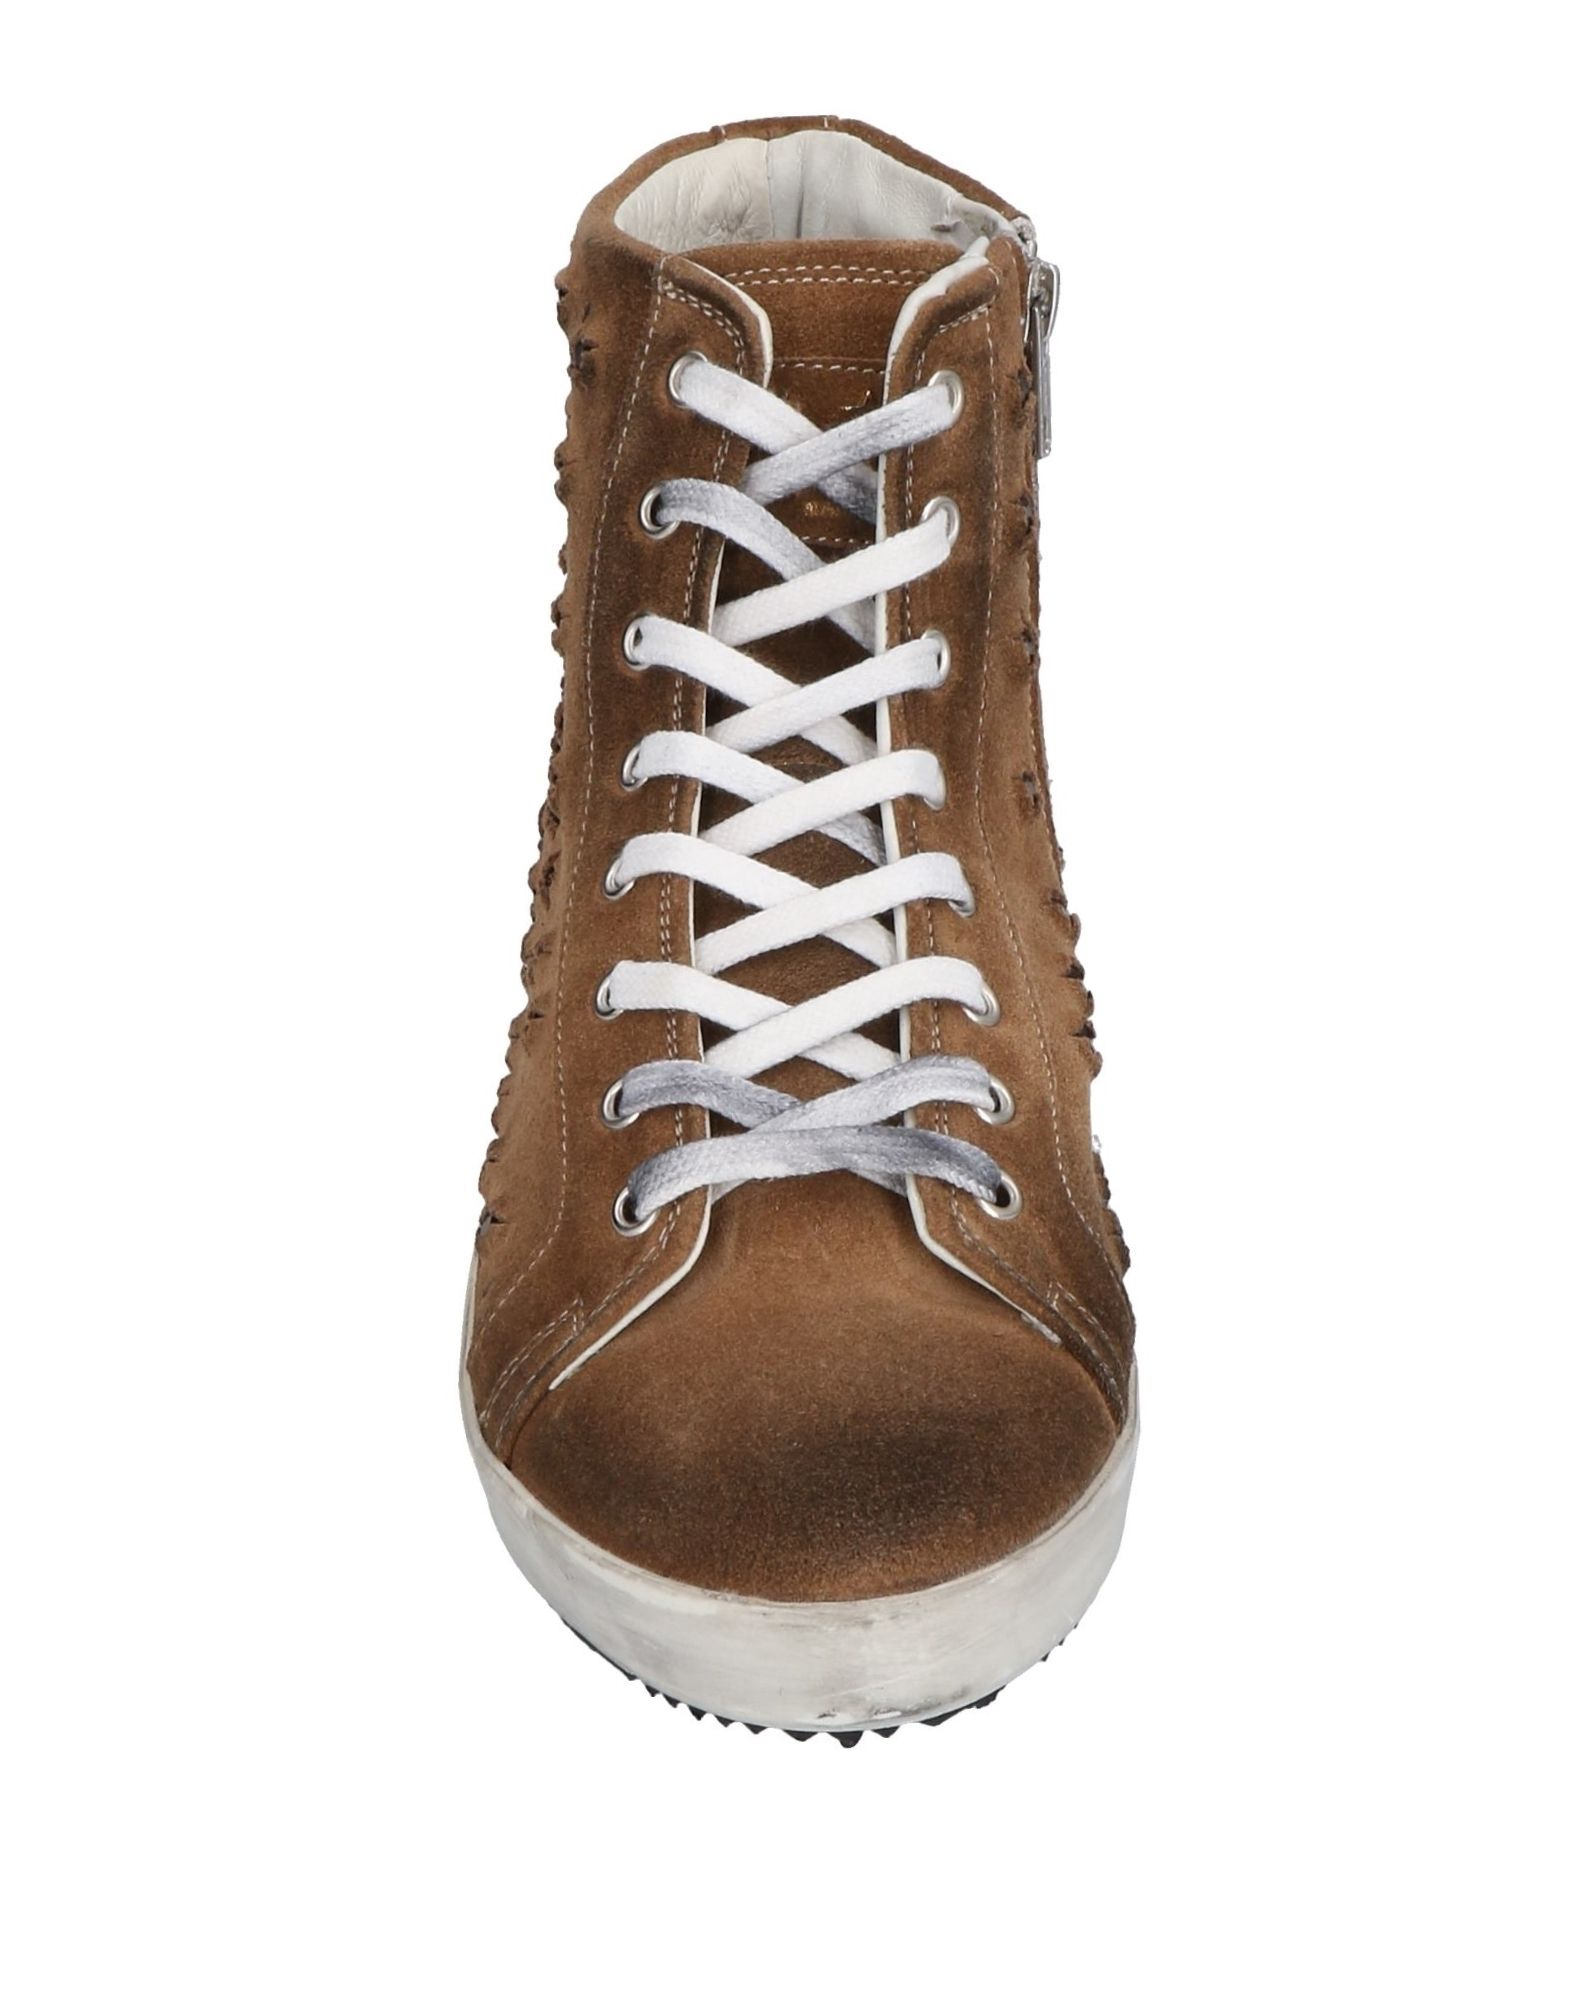 Sneakers Happiness Donna - 11496953XP 11496953XP 11496953XP elegante b8f46c